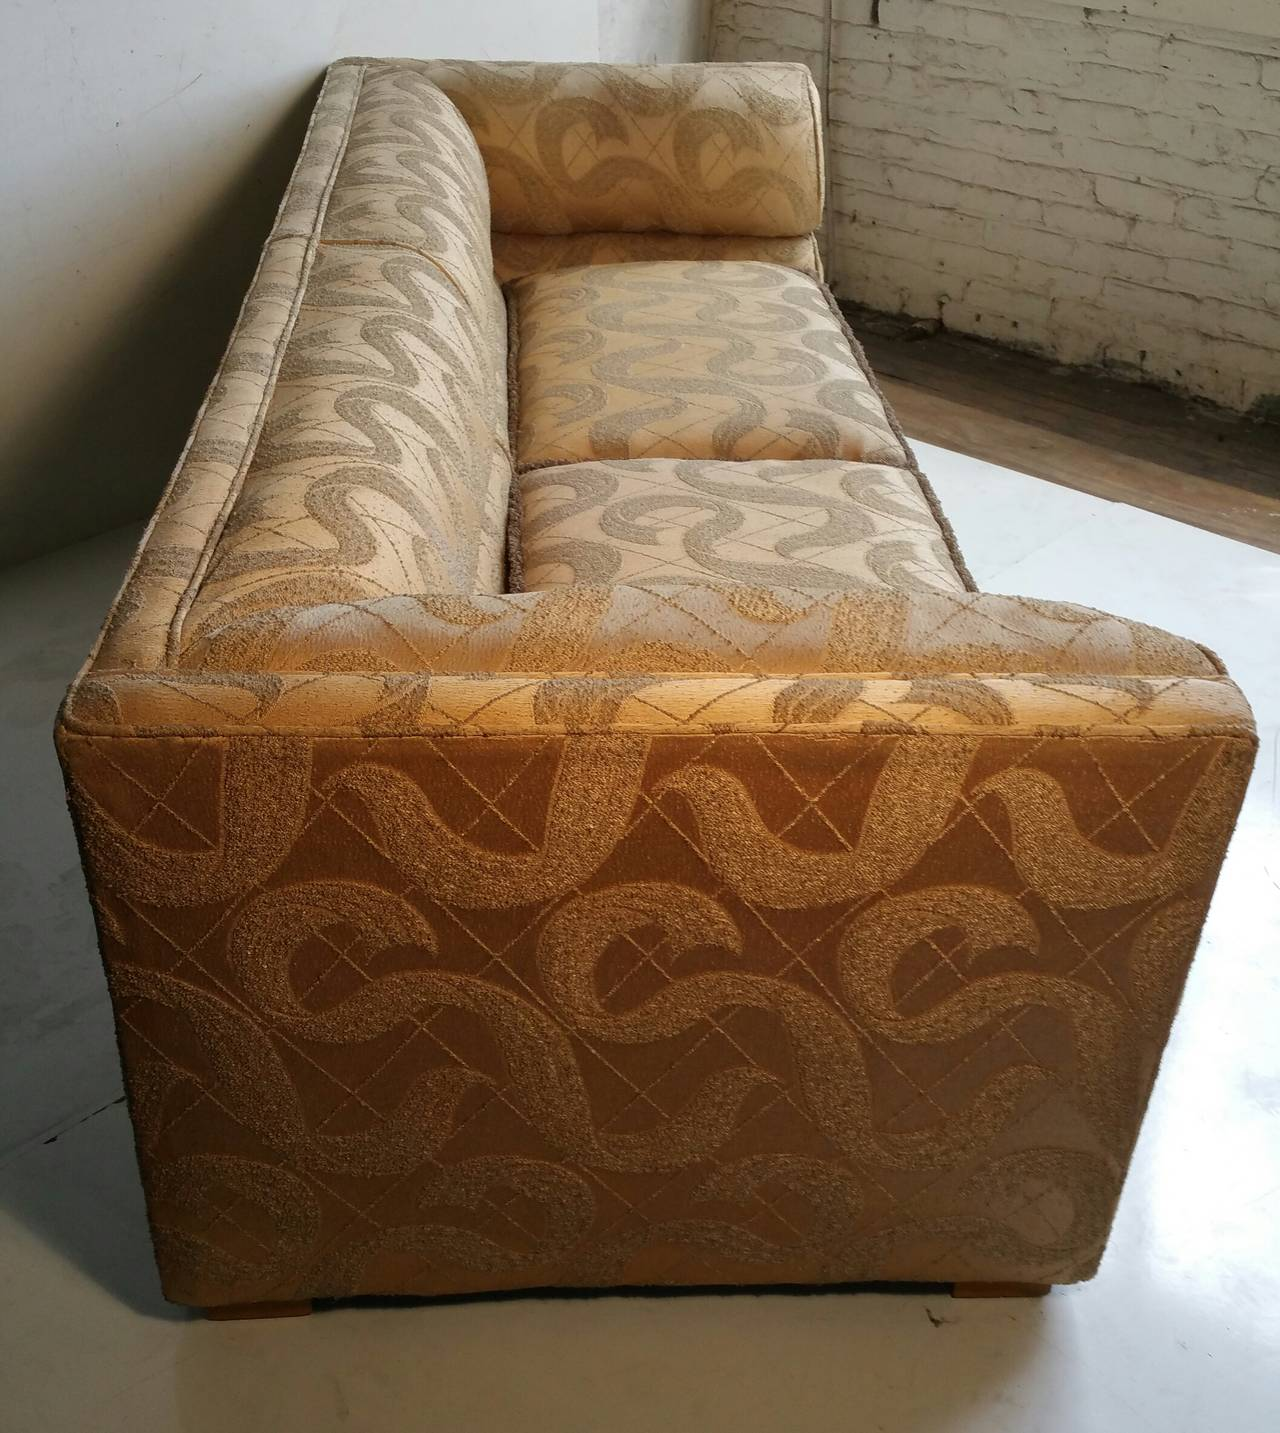 brocade sofa fabric bed john lewis gumtree outstanding art deco original sculpted for sale in good condition buffalo